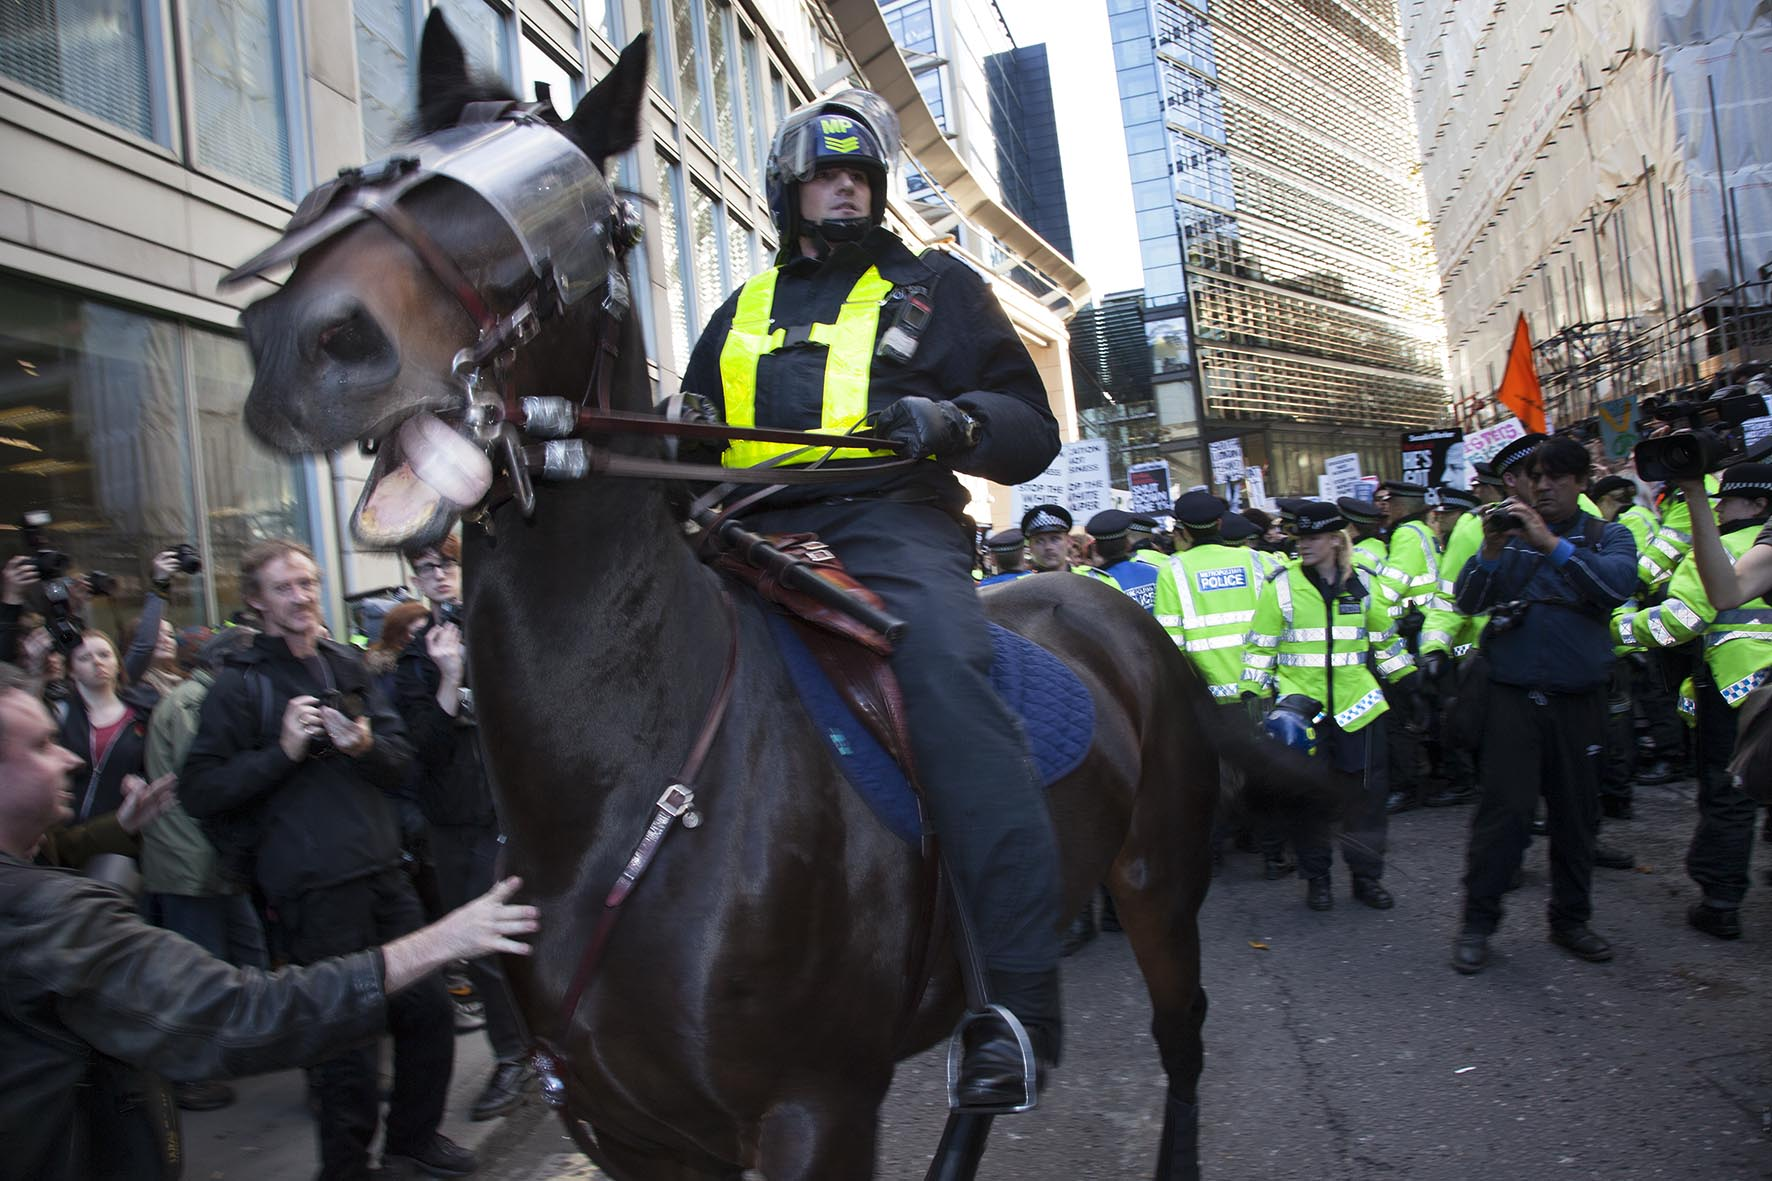 Police horses in riot gear are deployed in The City of London as students march to protest against rises in tuition fees and changes to higher education.